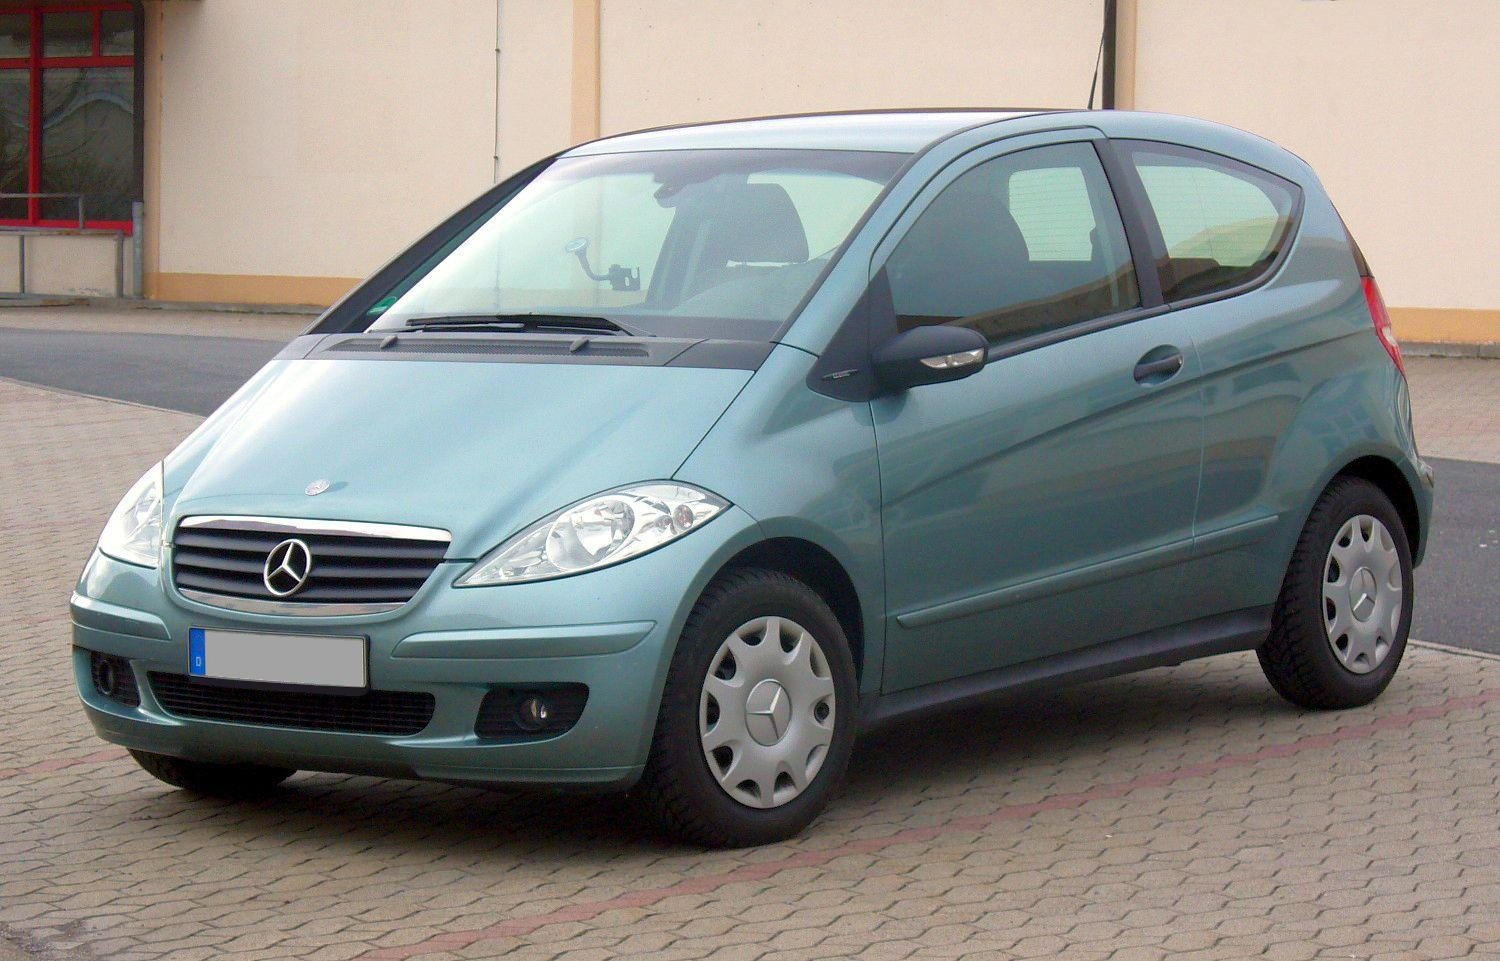 mercedes benz a 150 technical details history photos on